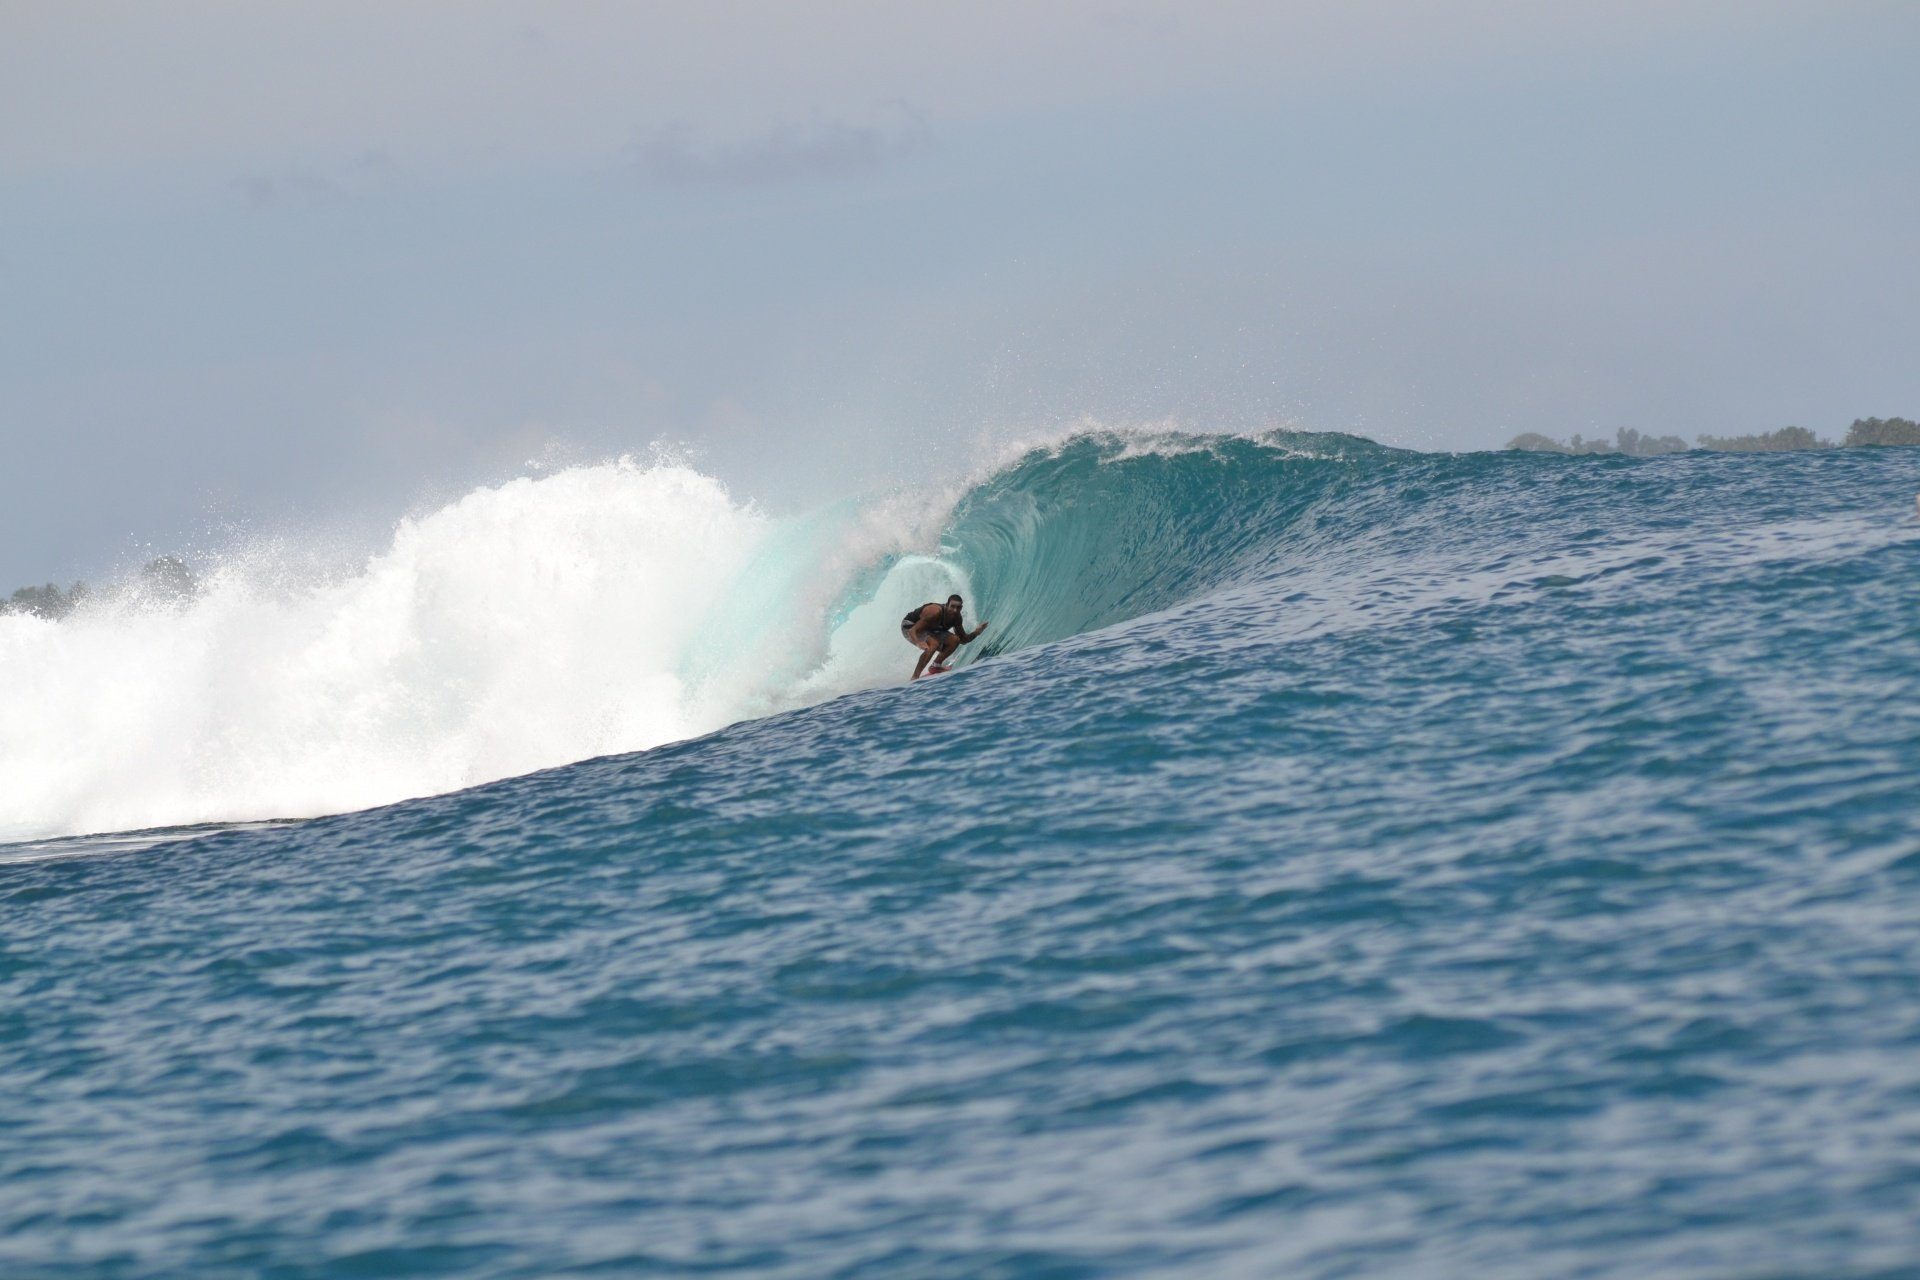 user314676's photo of Hideaways - Mentawai